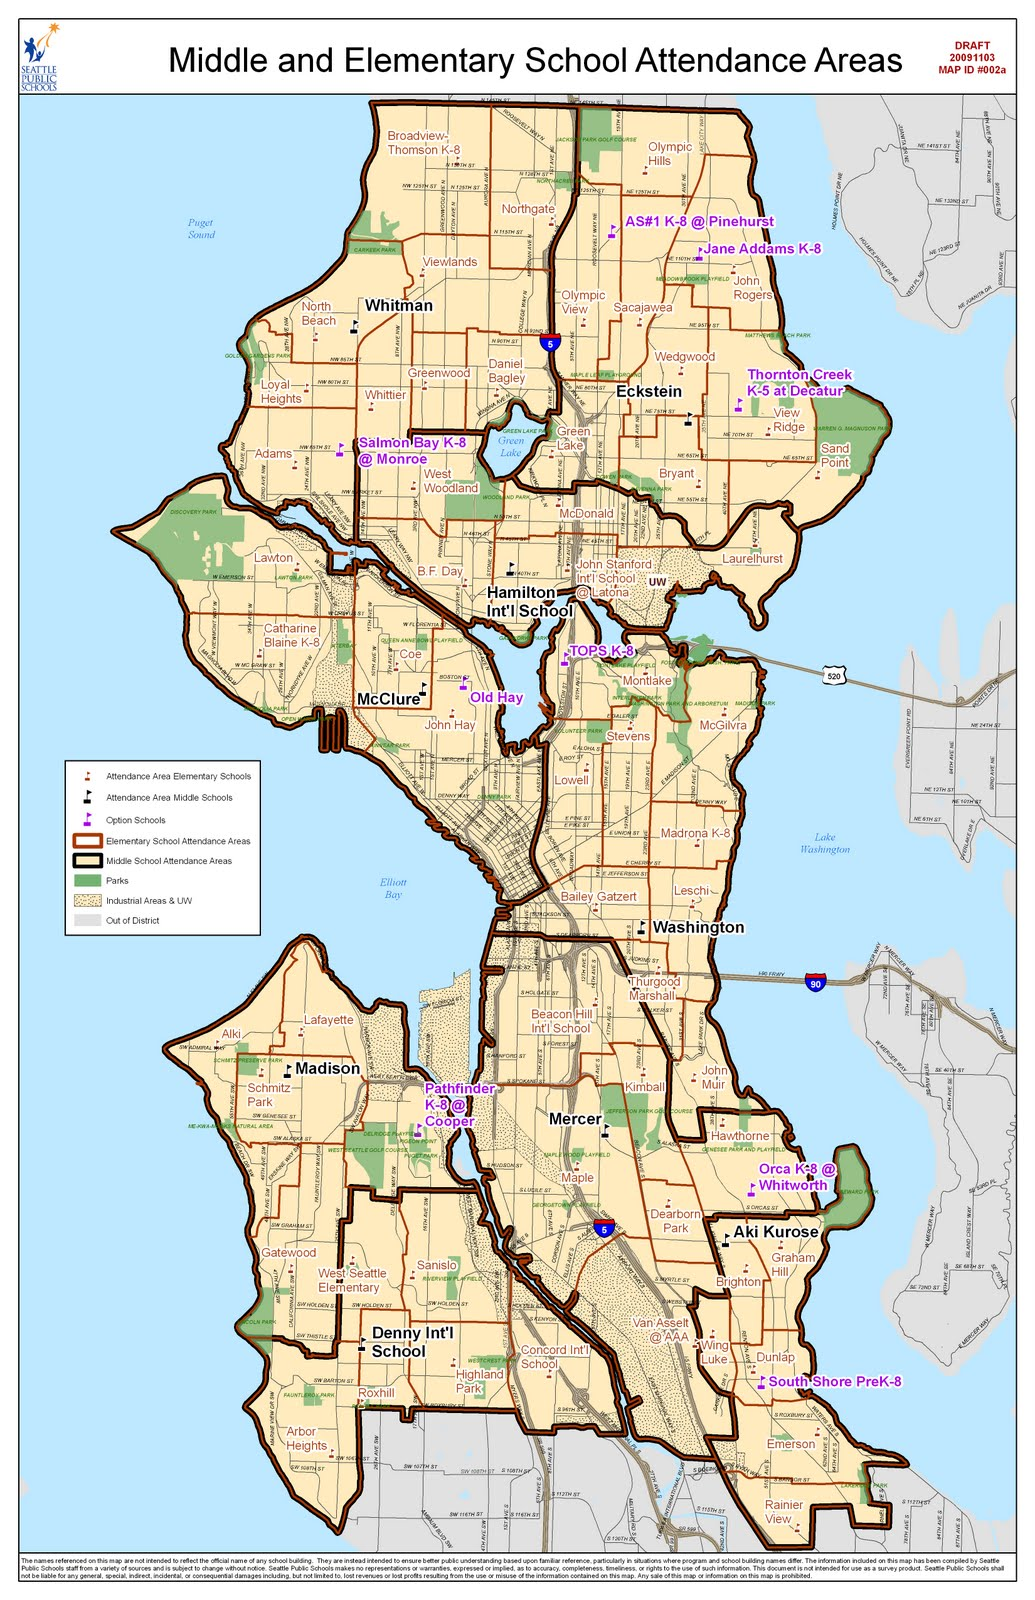 Revised new Seattle Public Schools assignment areas Pinehurst